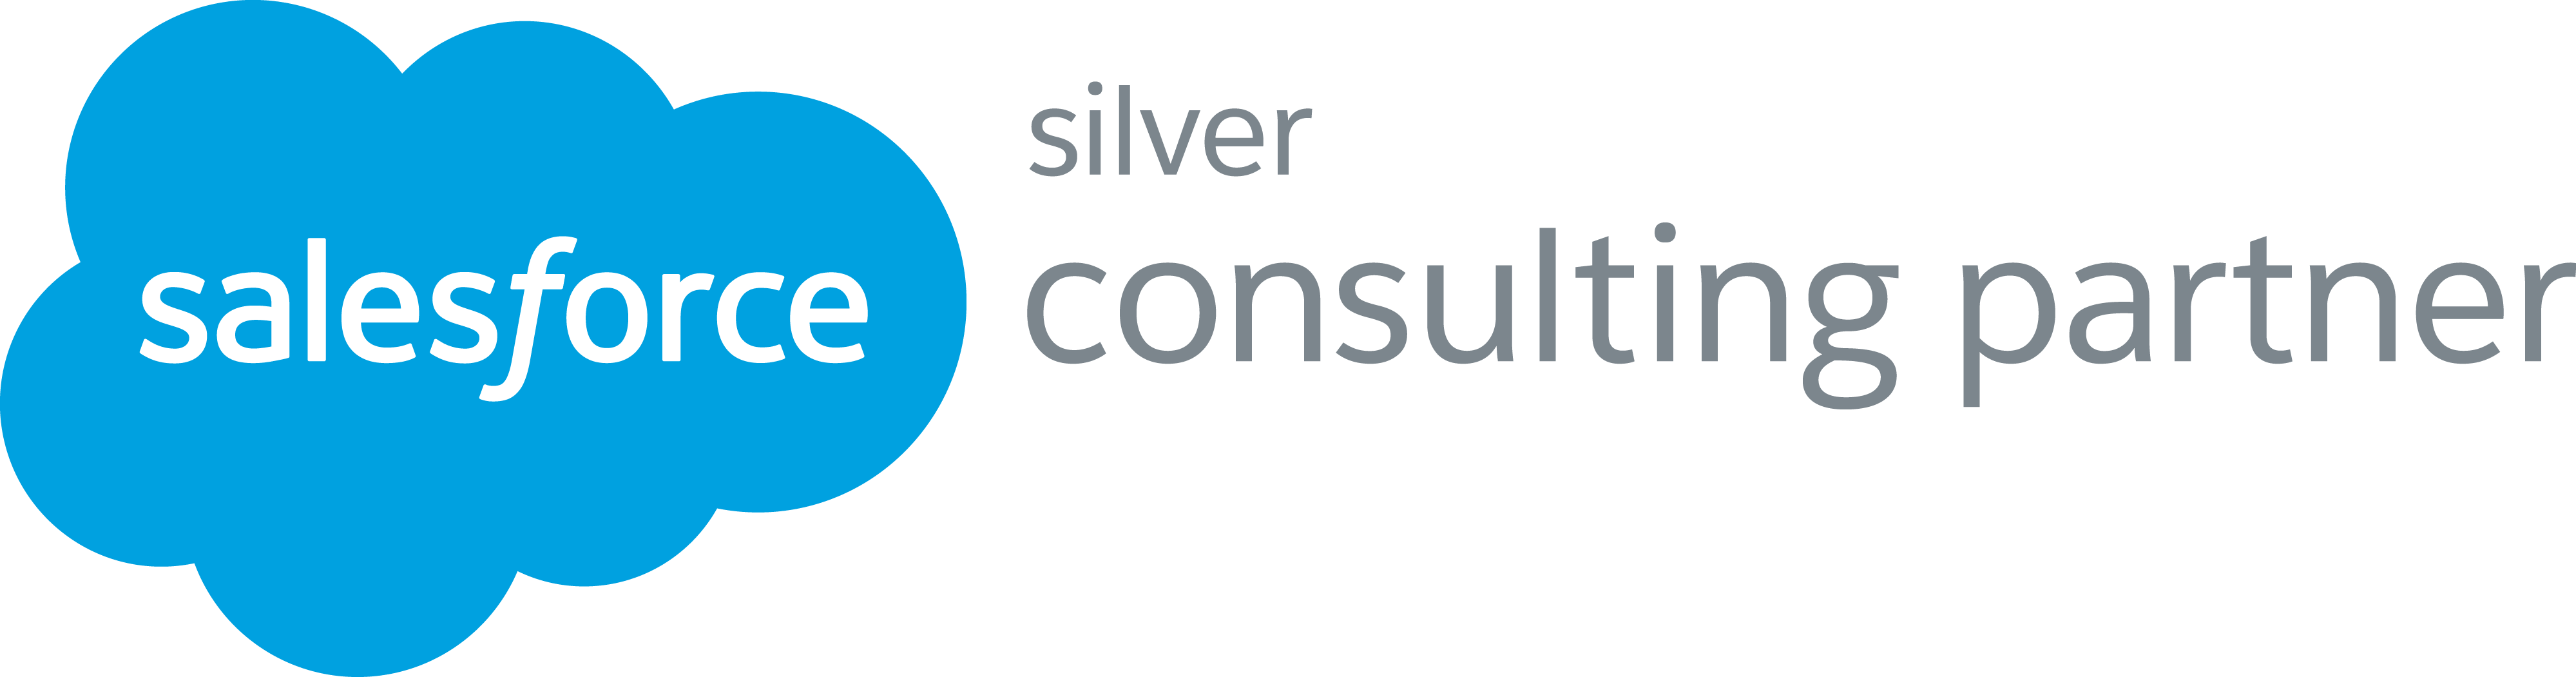 2015sf_Partner_SilverConsultingPartner_logo_RGB (1)